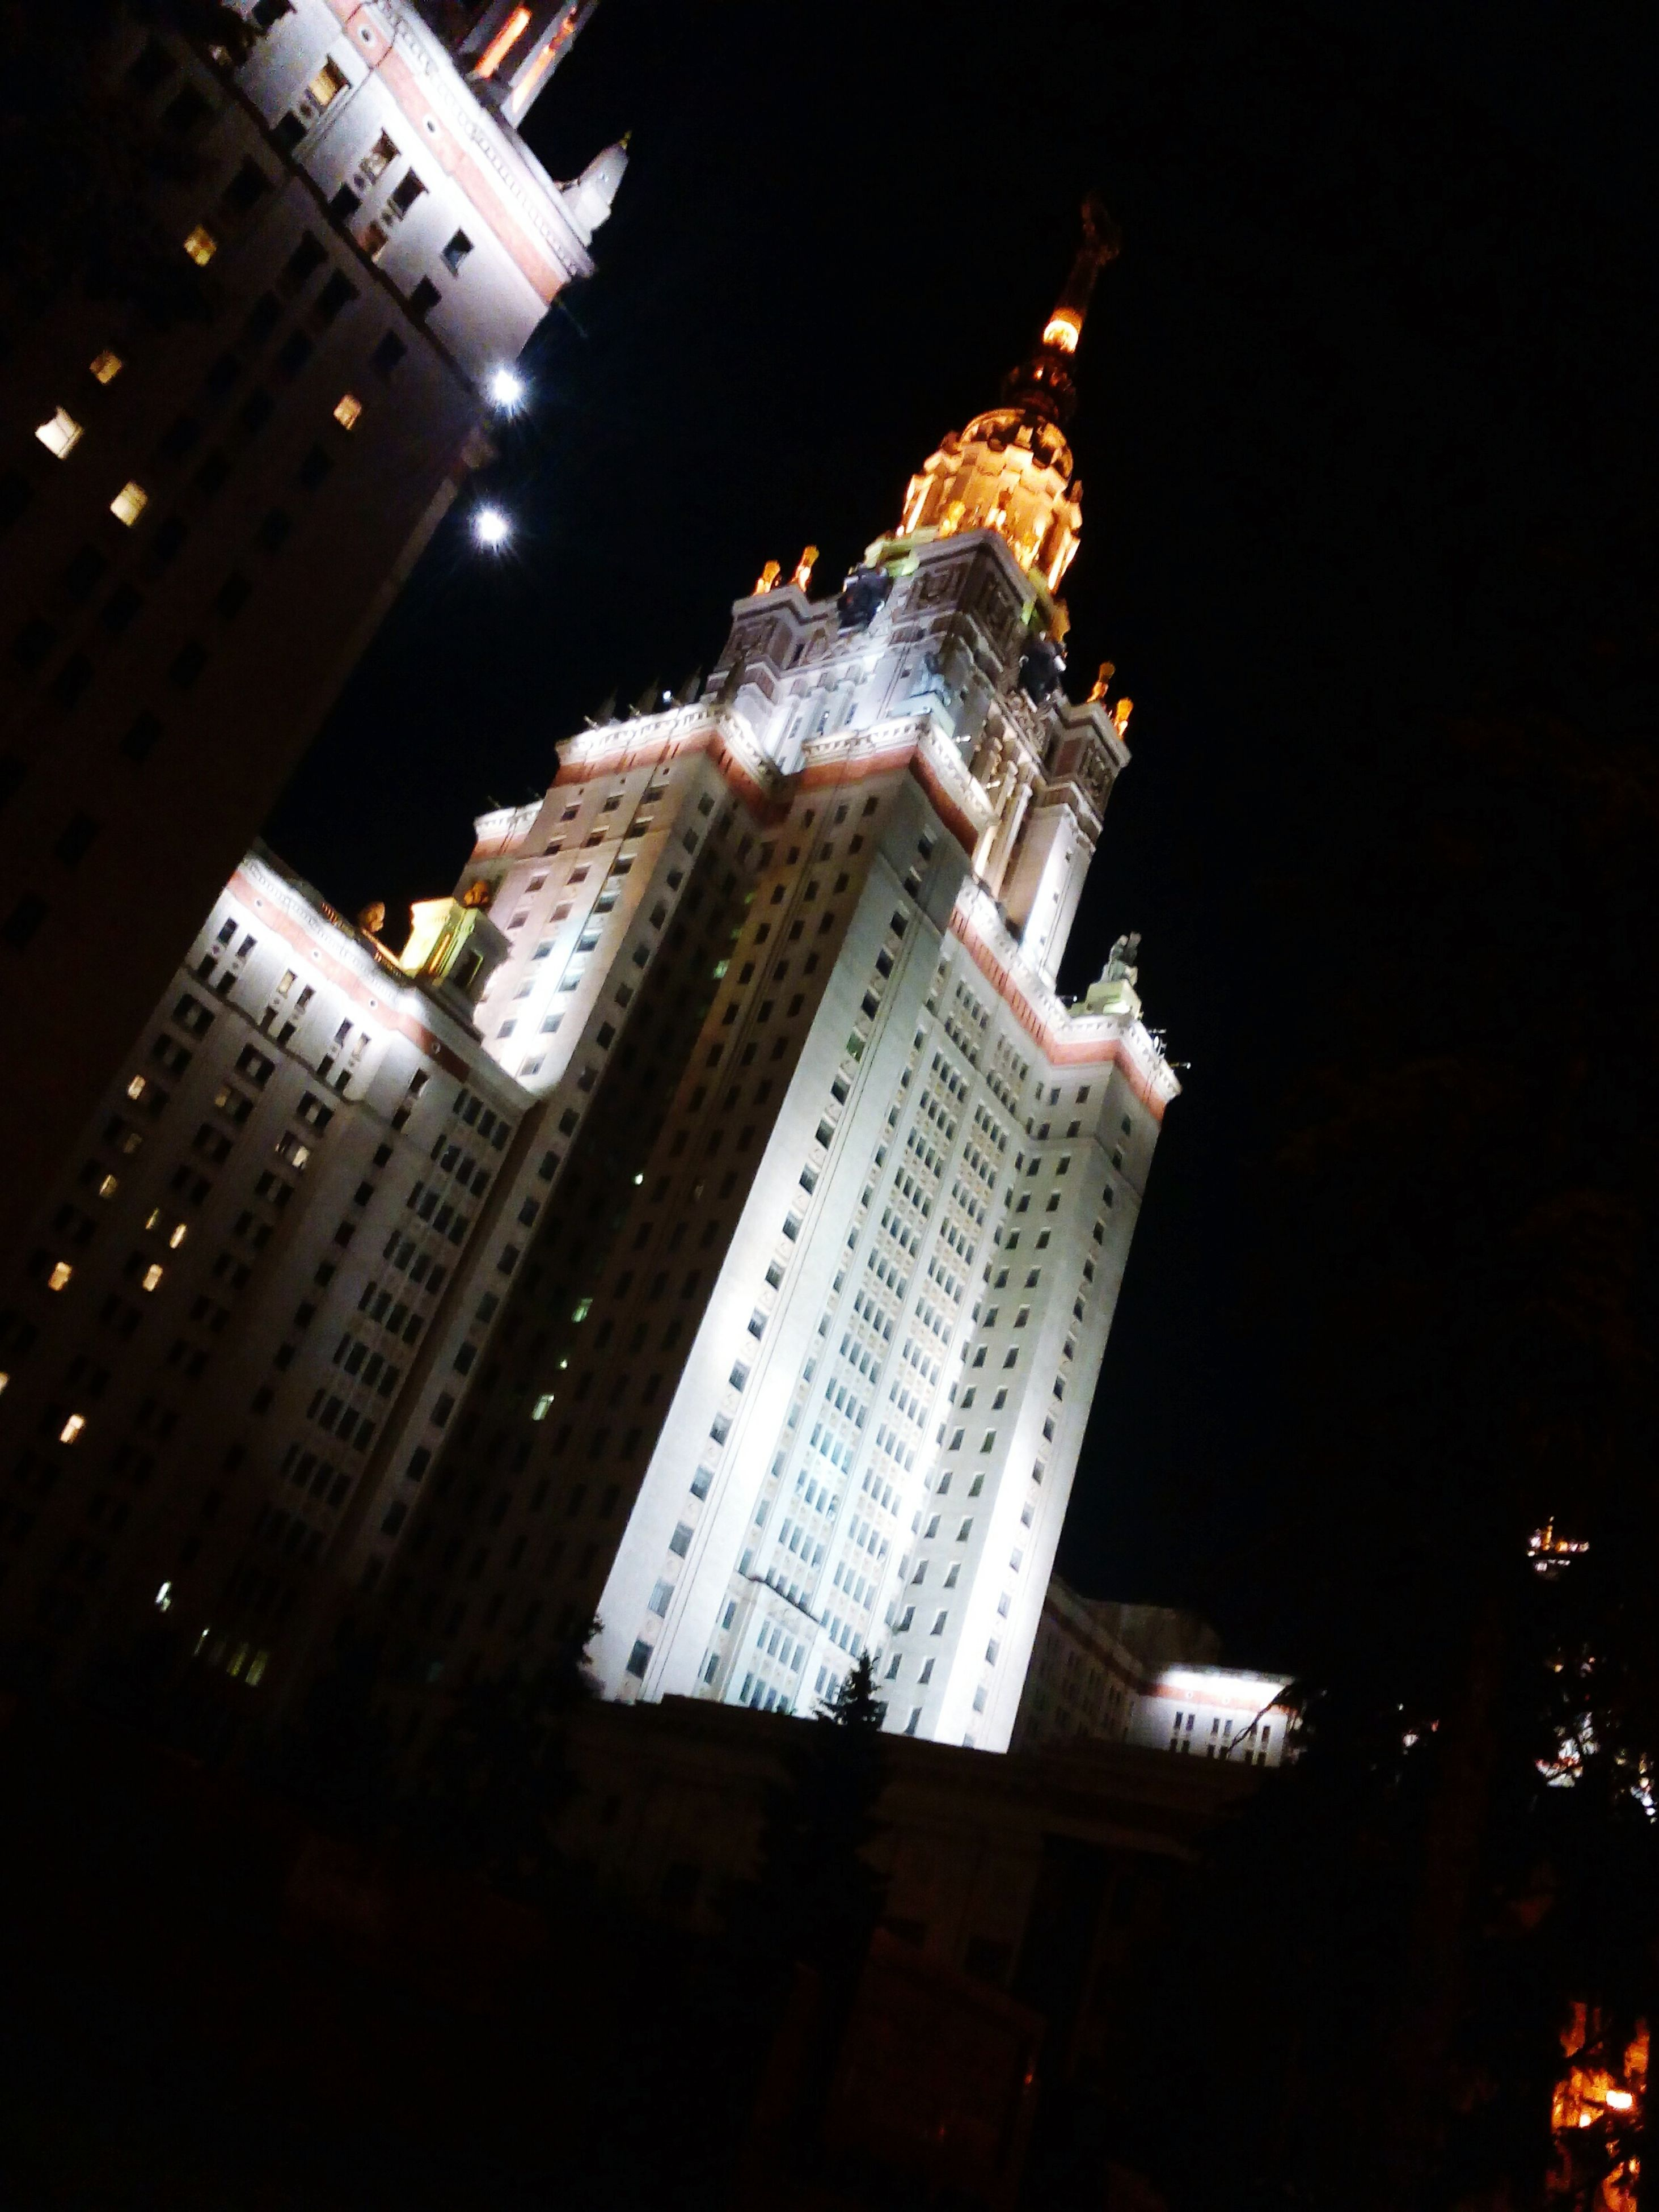 night, illuminated, building exterior, architecture, built structure, city, tall - high, low angle view, skyscraper, tower, modern, capital cities, building, office building, travel destinations, sky, city life, outdoors, famous place, tall